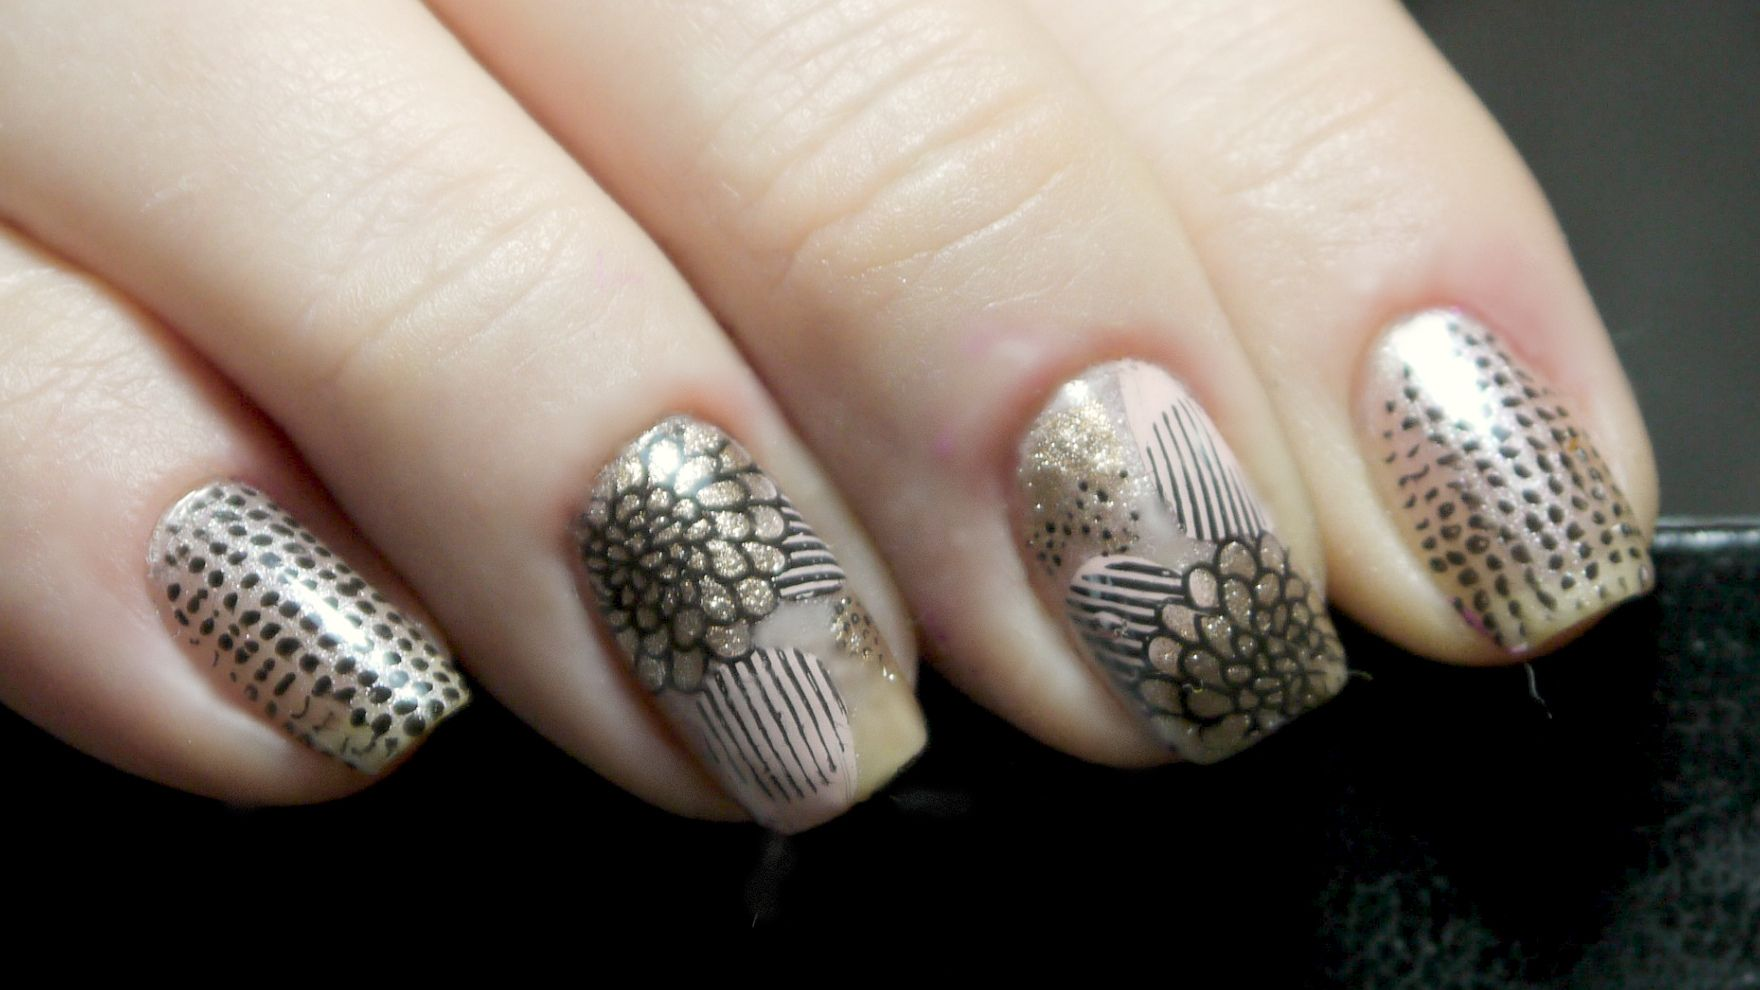 Nail art by Fairy Nail Story | ˙·٠•○♥ Show me your NAILS ♥○•٠ ...